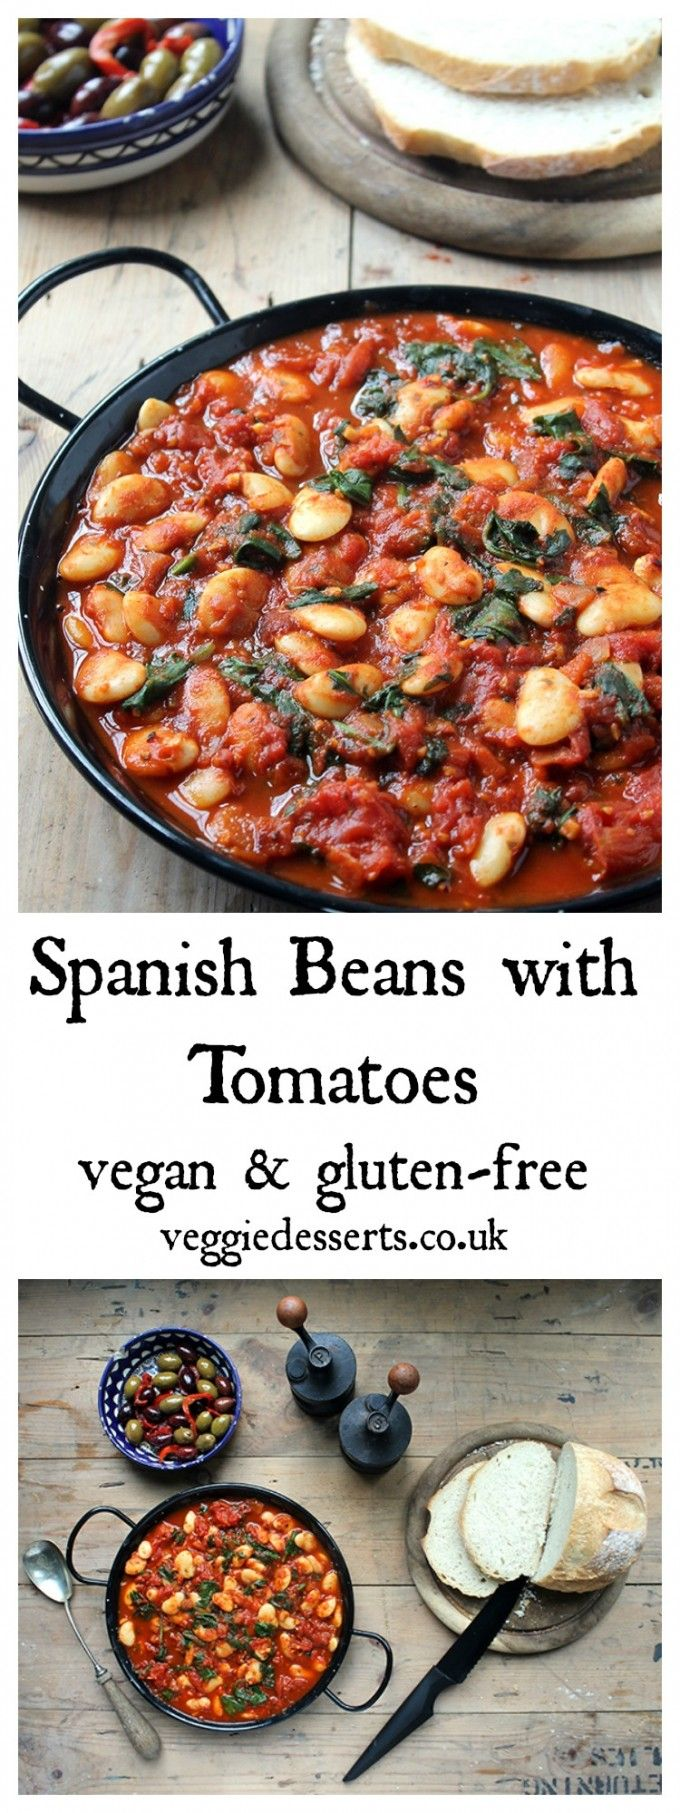 Spanish Beans with Tomatoes   Vegan & Gluten-Free   Veggie Desserts Blog  These Spanish beans with tomatoes and smokey sweet spices are so easy to make. They're perfect to serve as tapas or a side dish. Vegan and gluten-free.